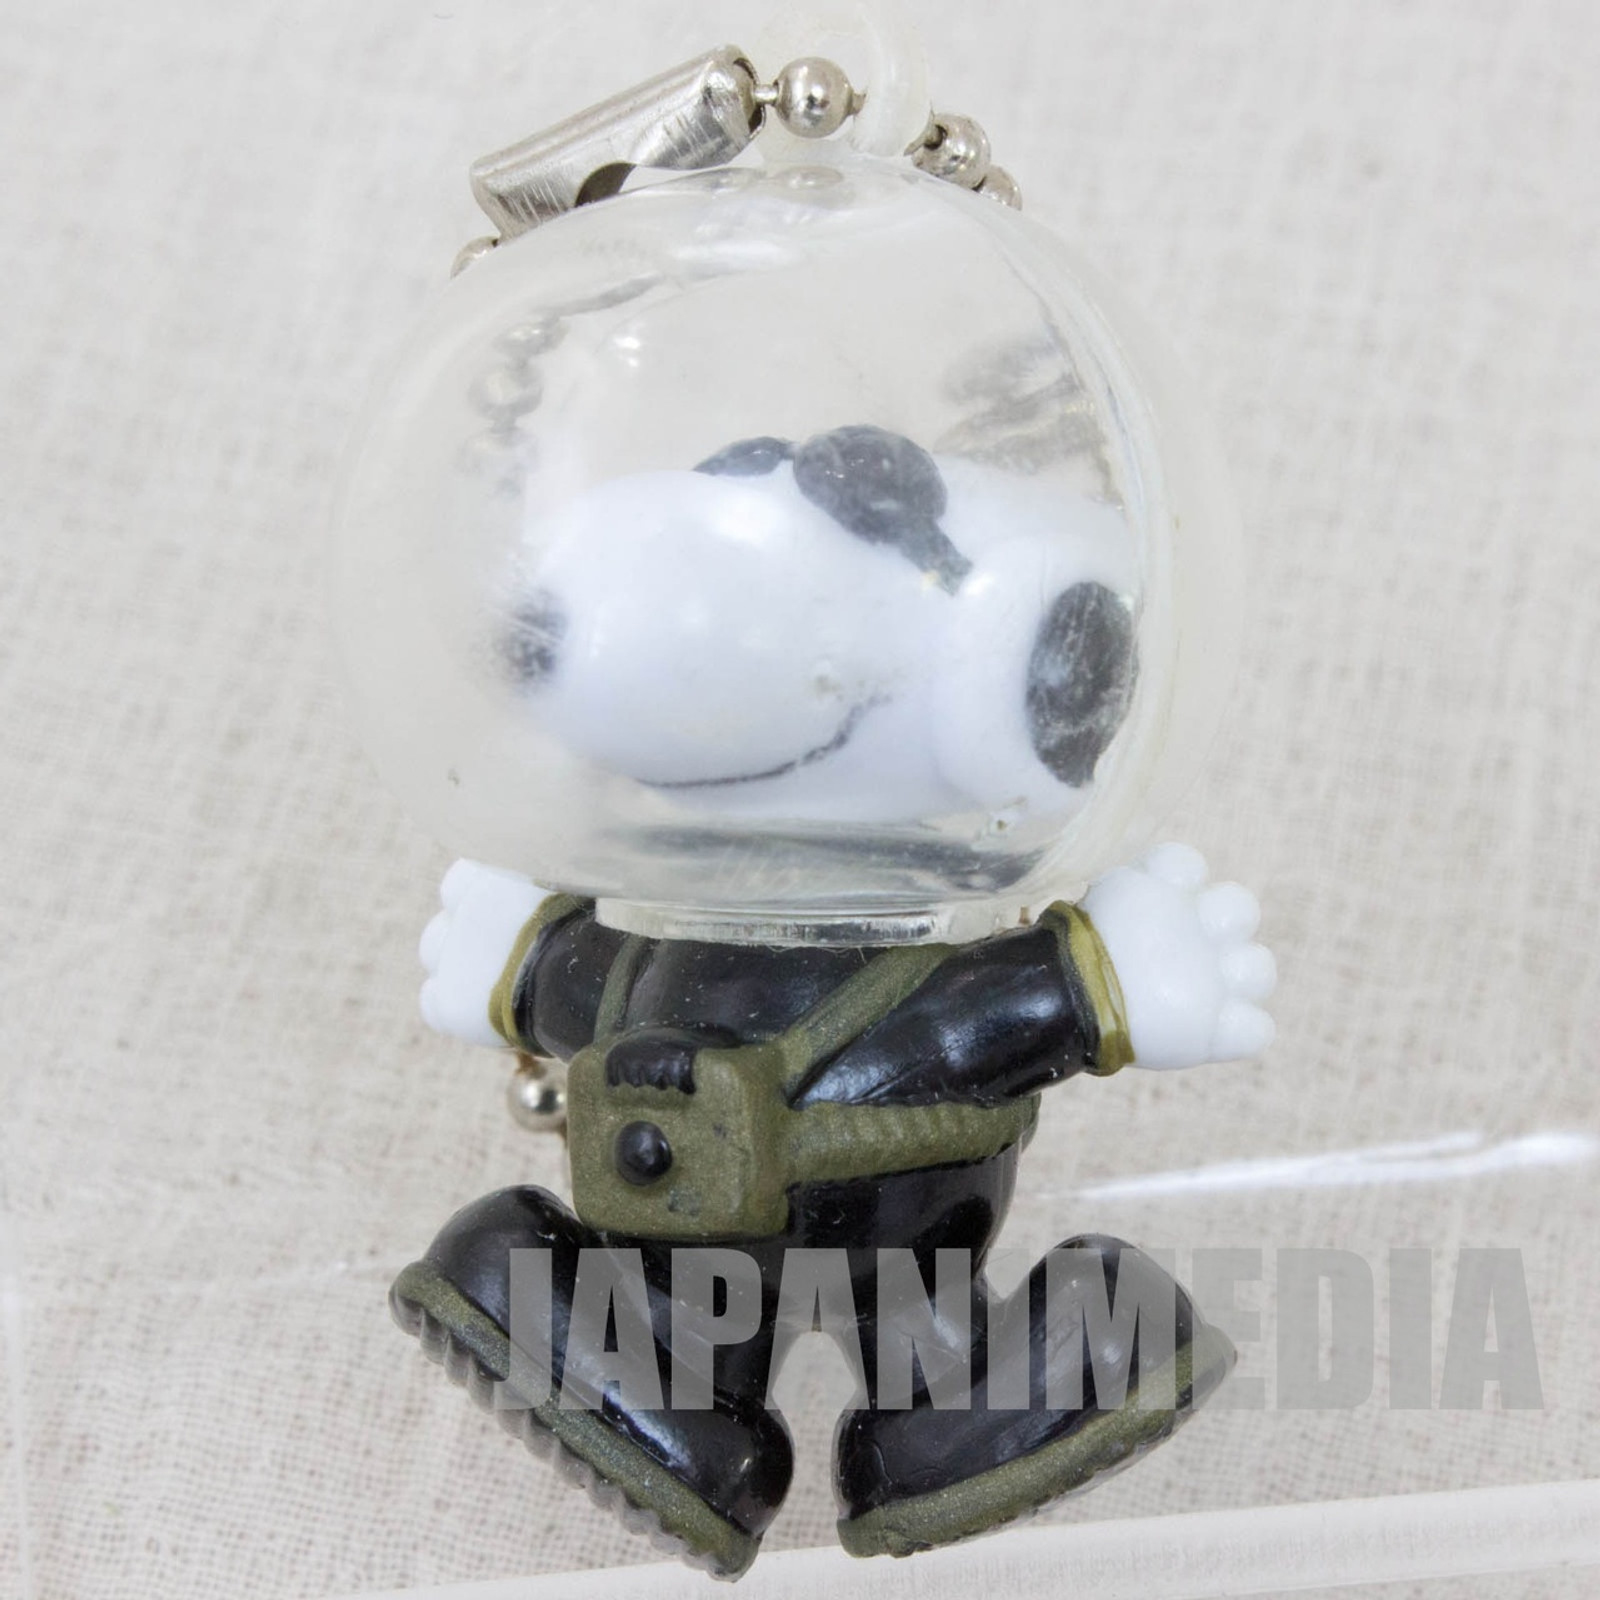 Snoopy Astronauts Figure Ball Key Chain Toy Figure JAPAN PEANUTS #3